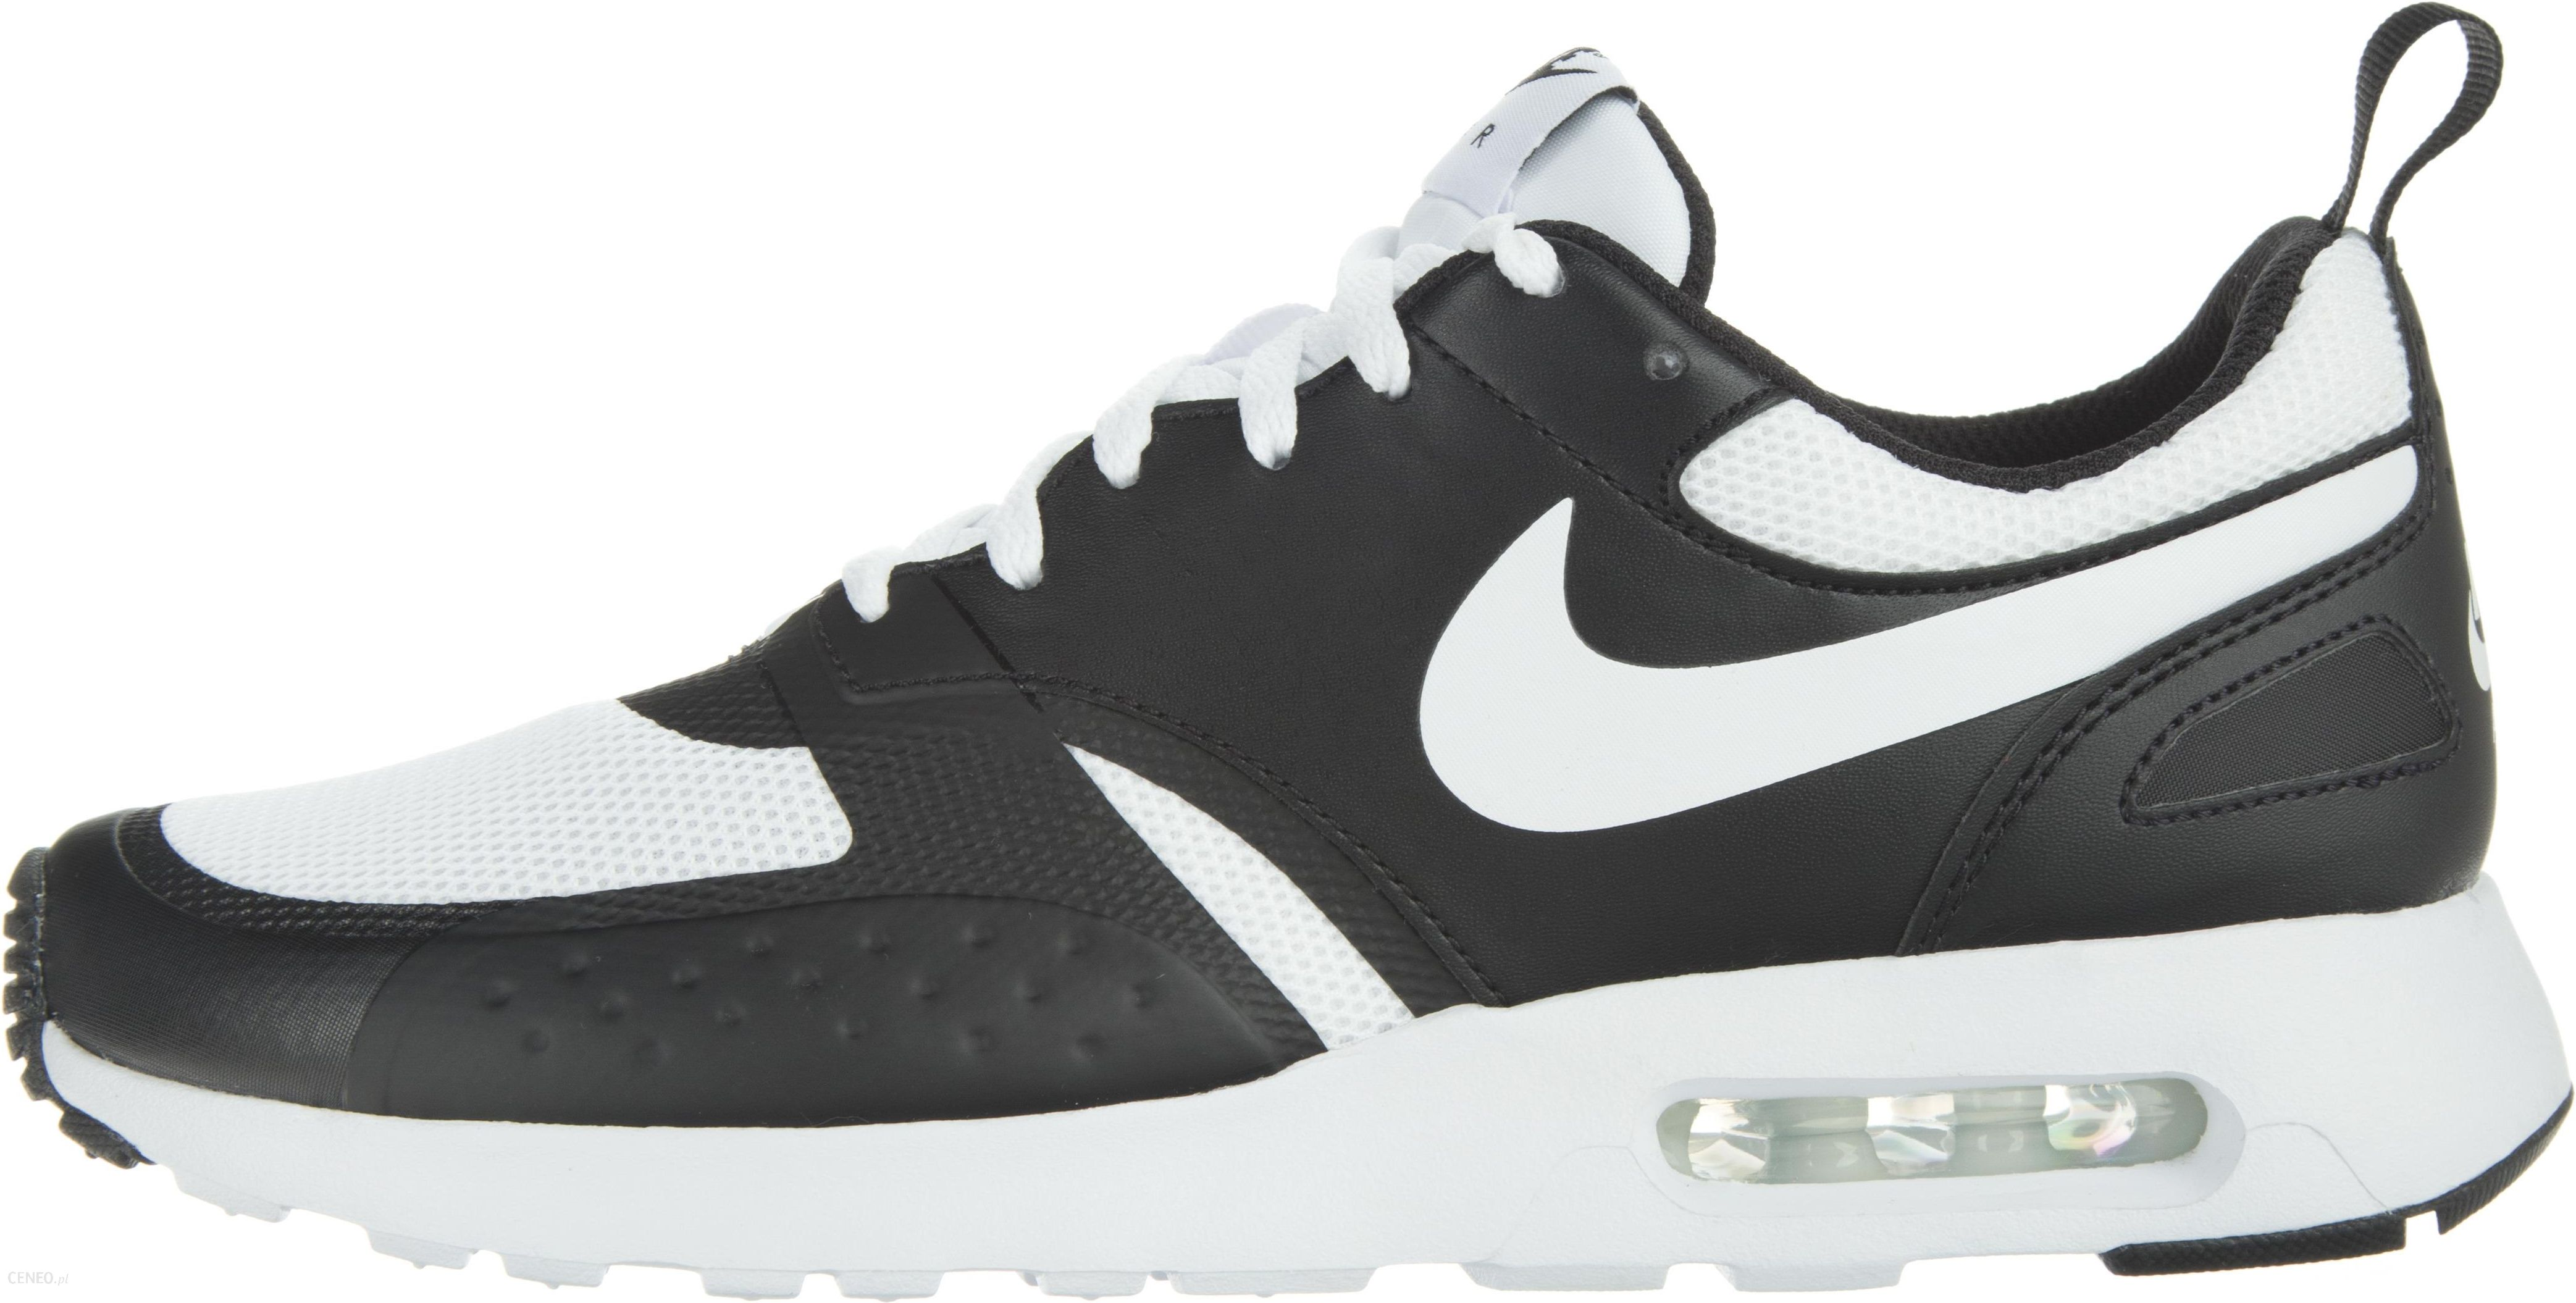 Nike Air Max Vision Sneakers Biały 42 Ceny i opinie Ceneo.pl